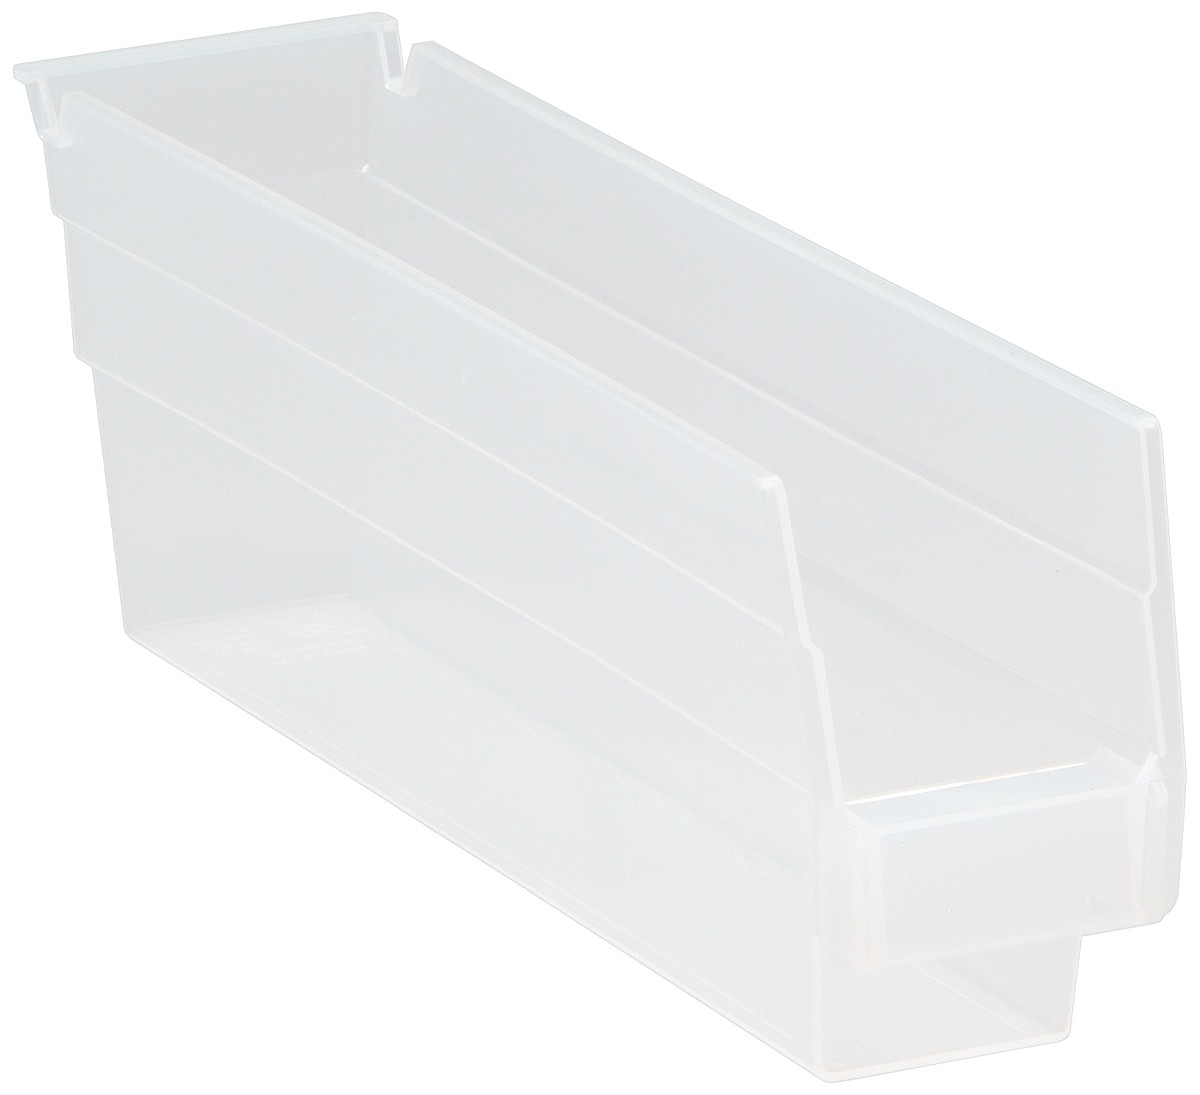 Clear-View Economy Shelf Bins, Model QSB100CL